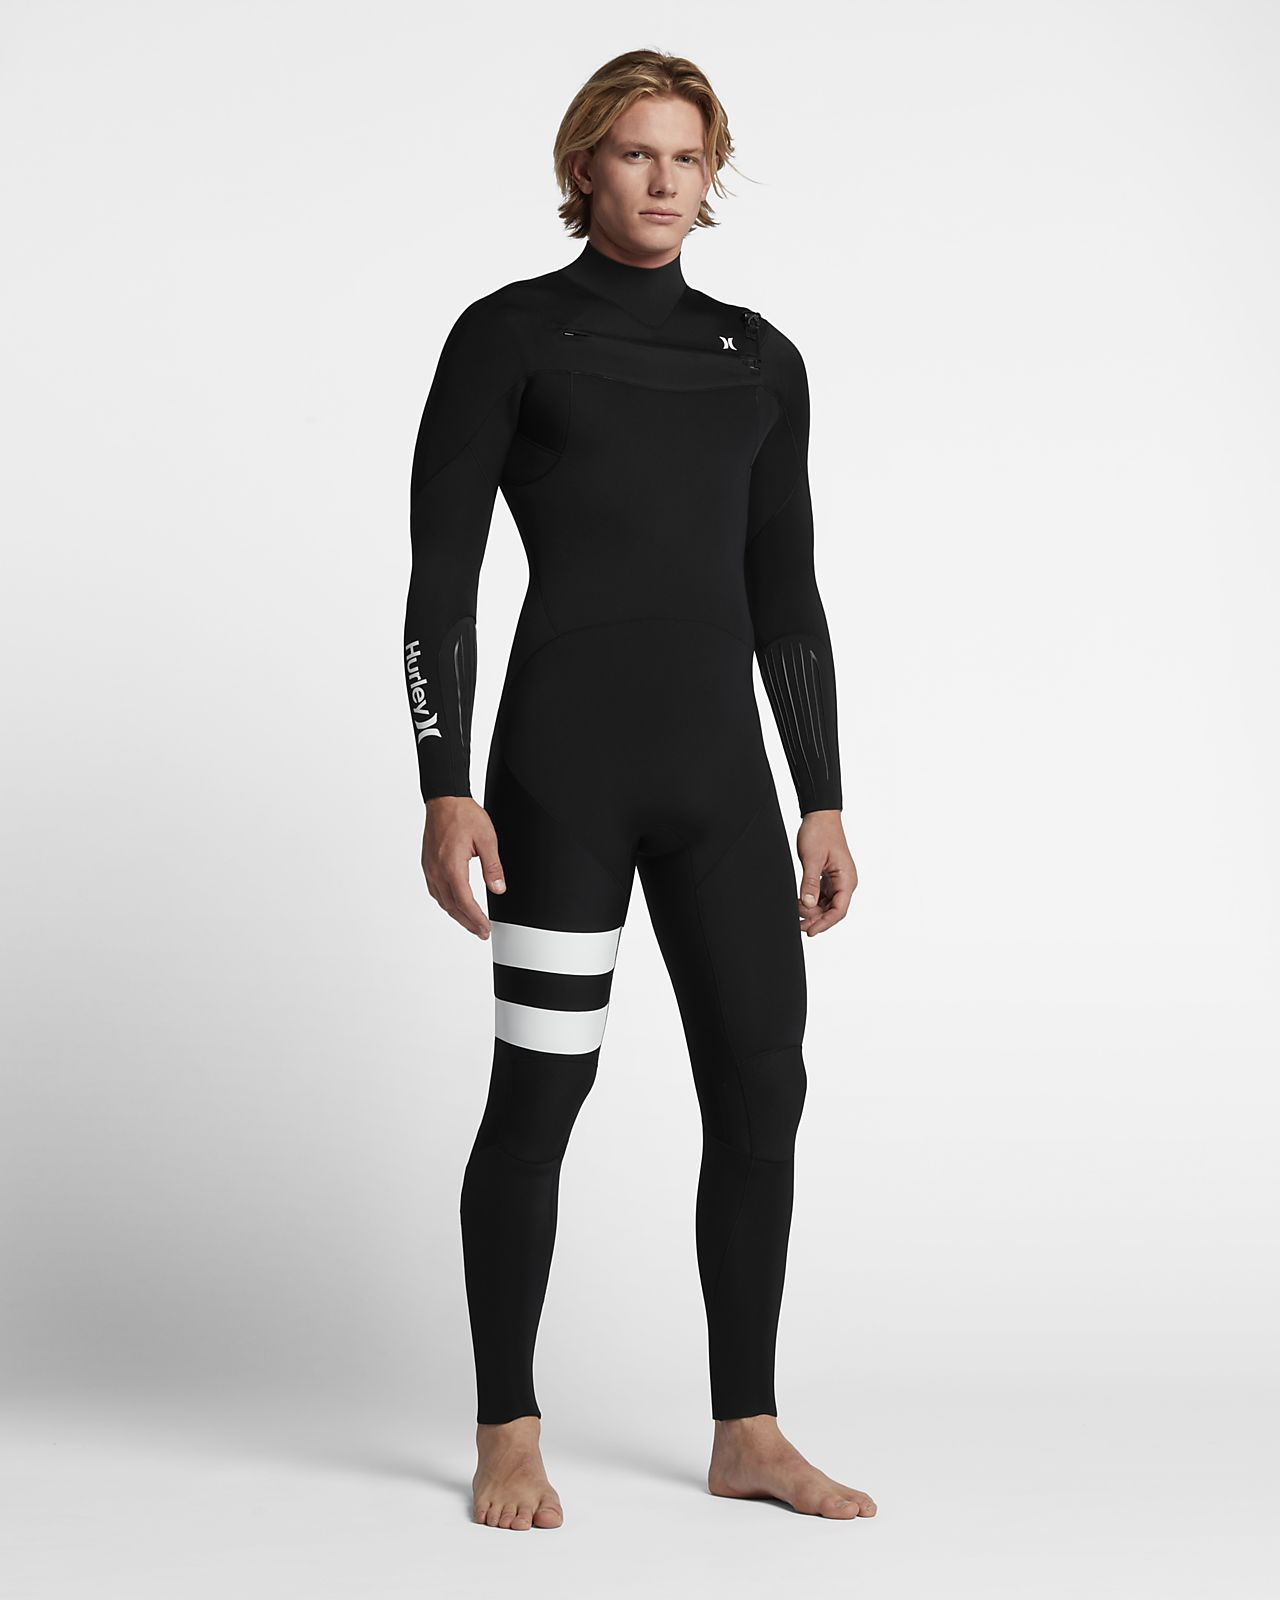 Hurley Advantage Elite 3 / 3 mm Fullsuit våtdrakt for herre